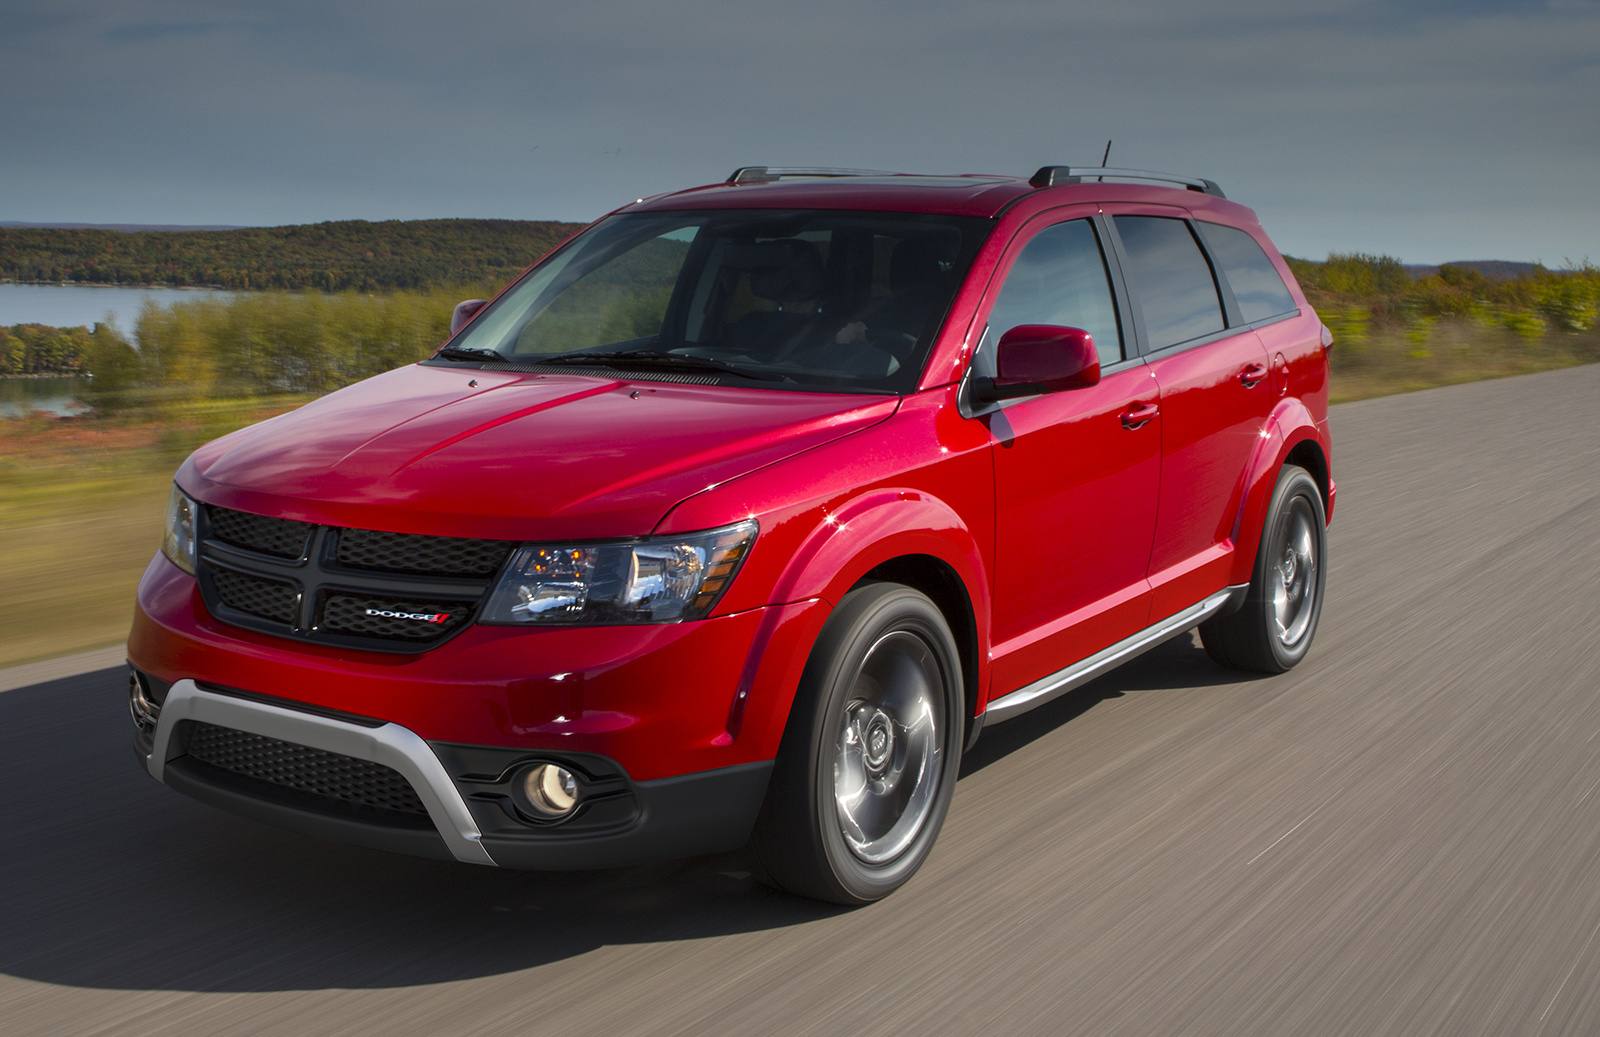 Awd Cars For Sale >> 2016 Dodge Journey - Overview - CarGurus